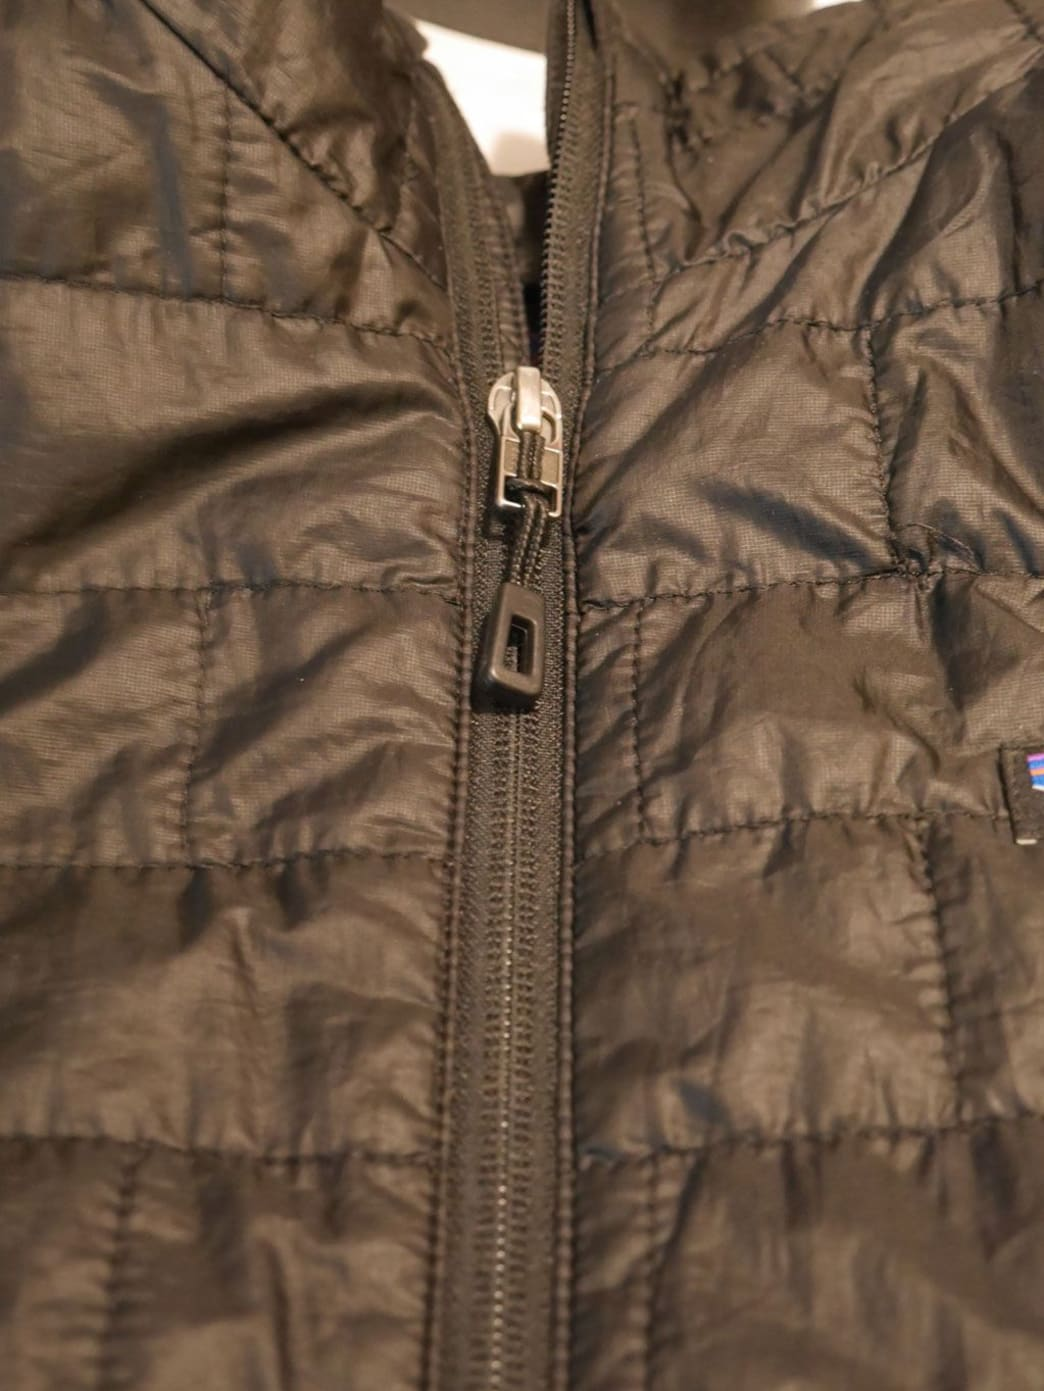 Lining up the placket on an exposed zipper takes some precision.